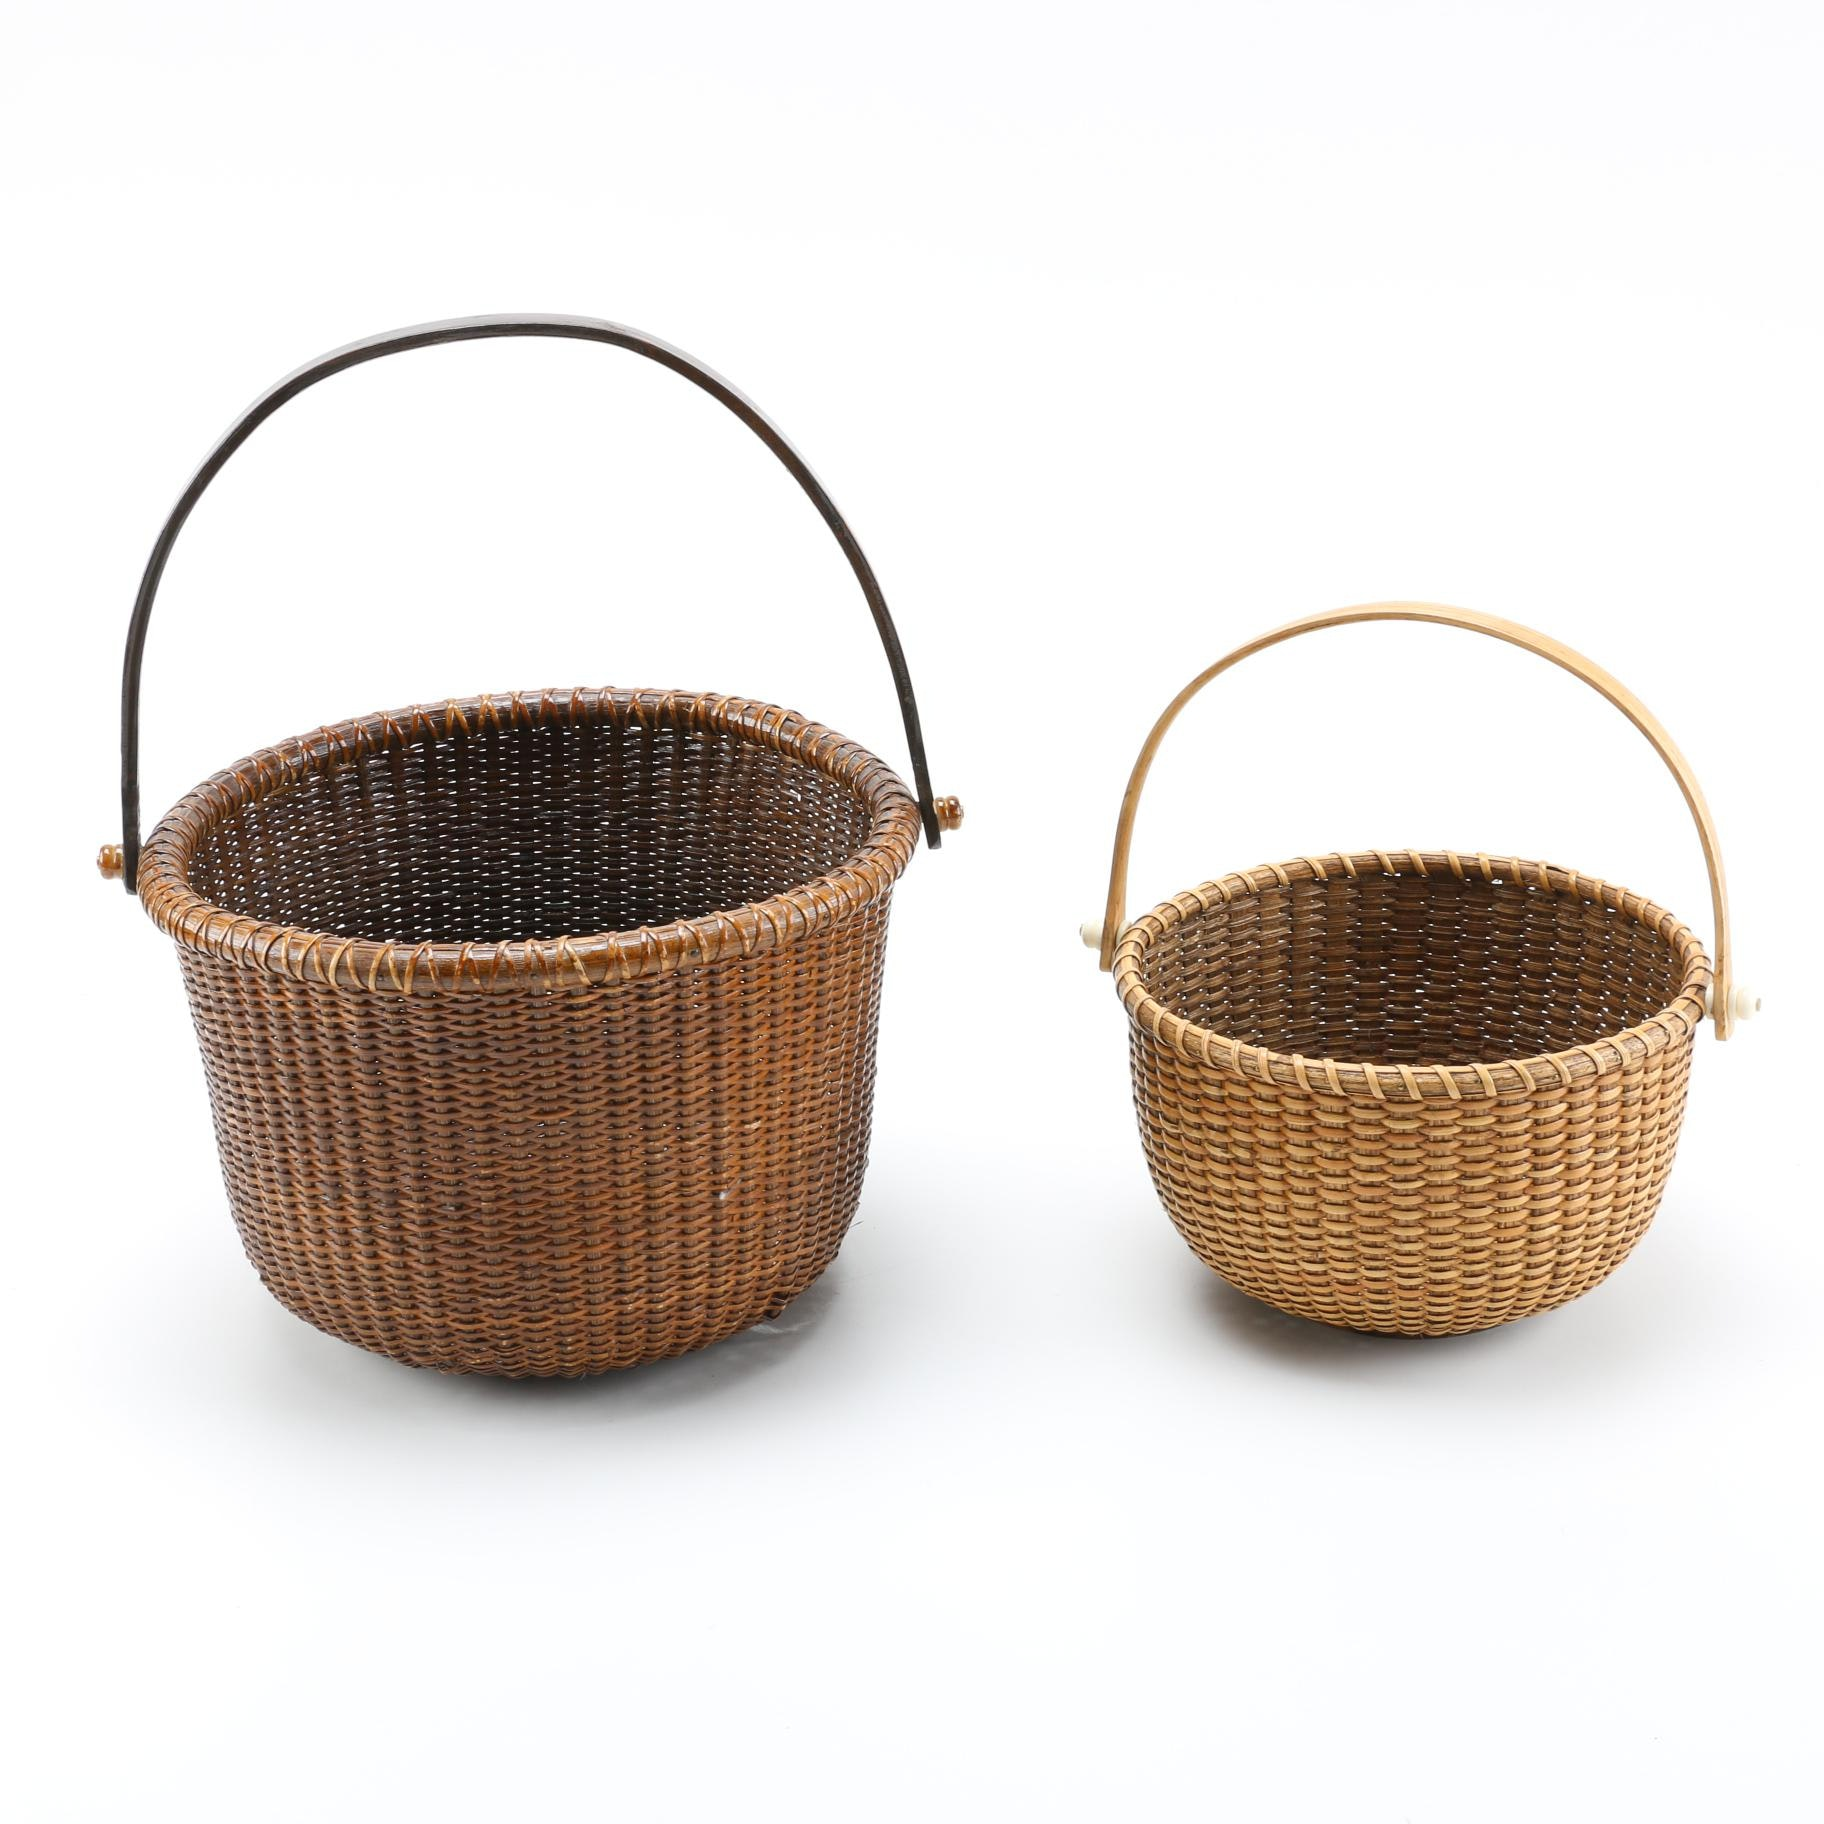 Pair of Wicker Baskets